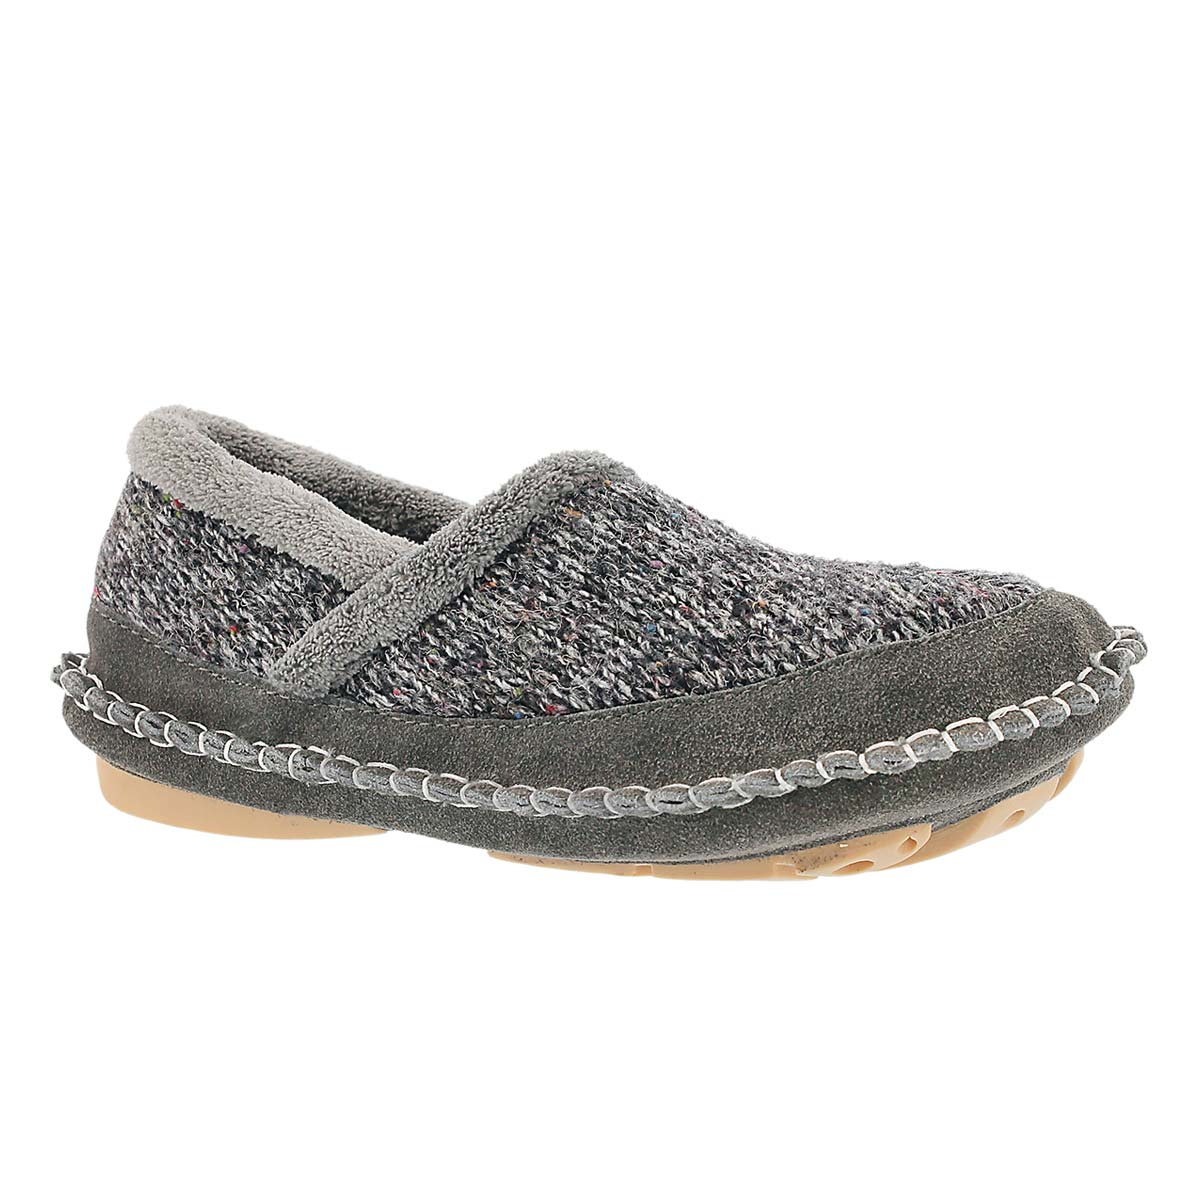 Women's AMELIA grey closed back slippers